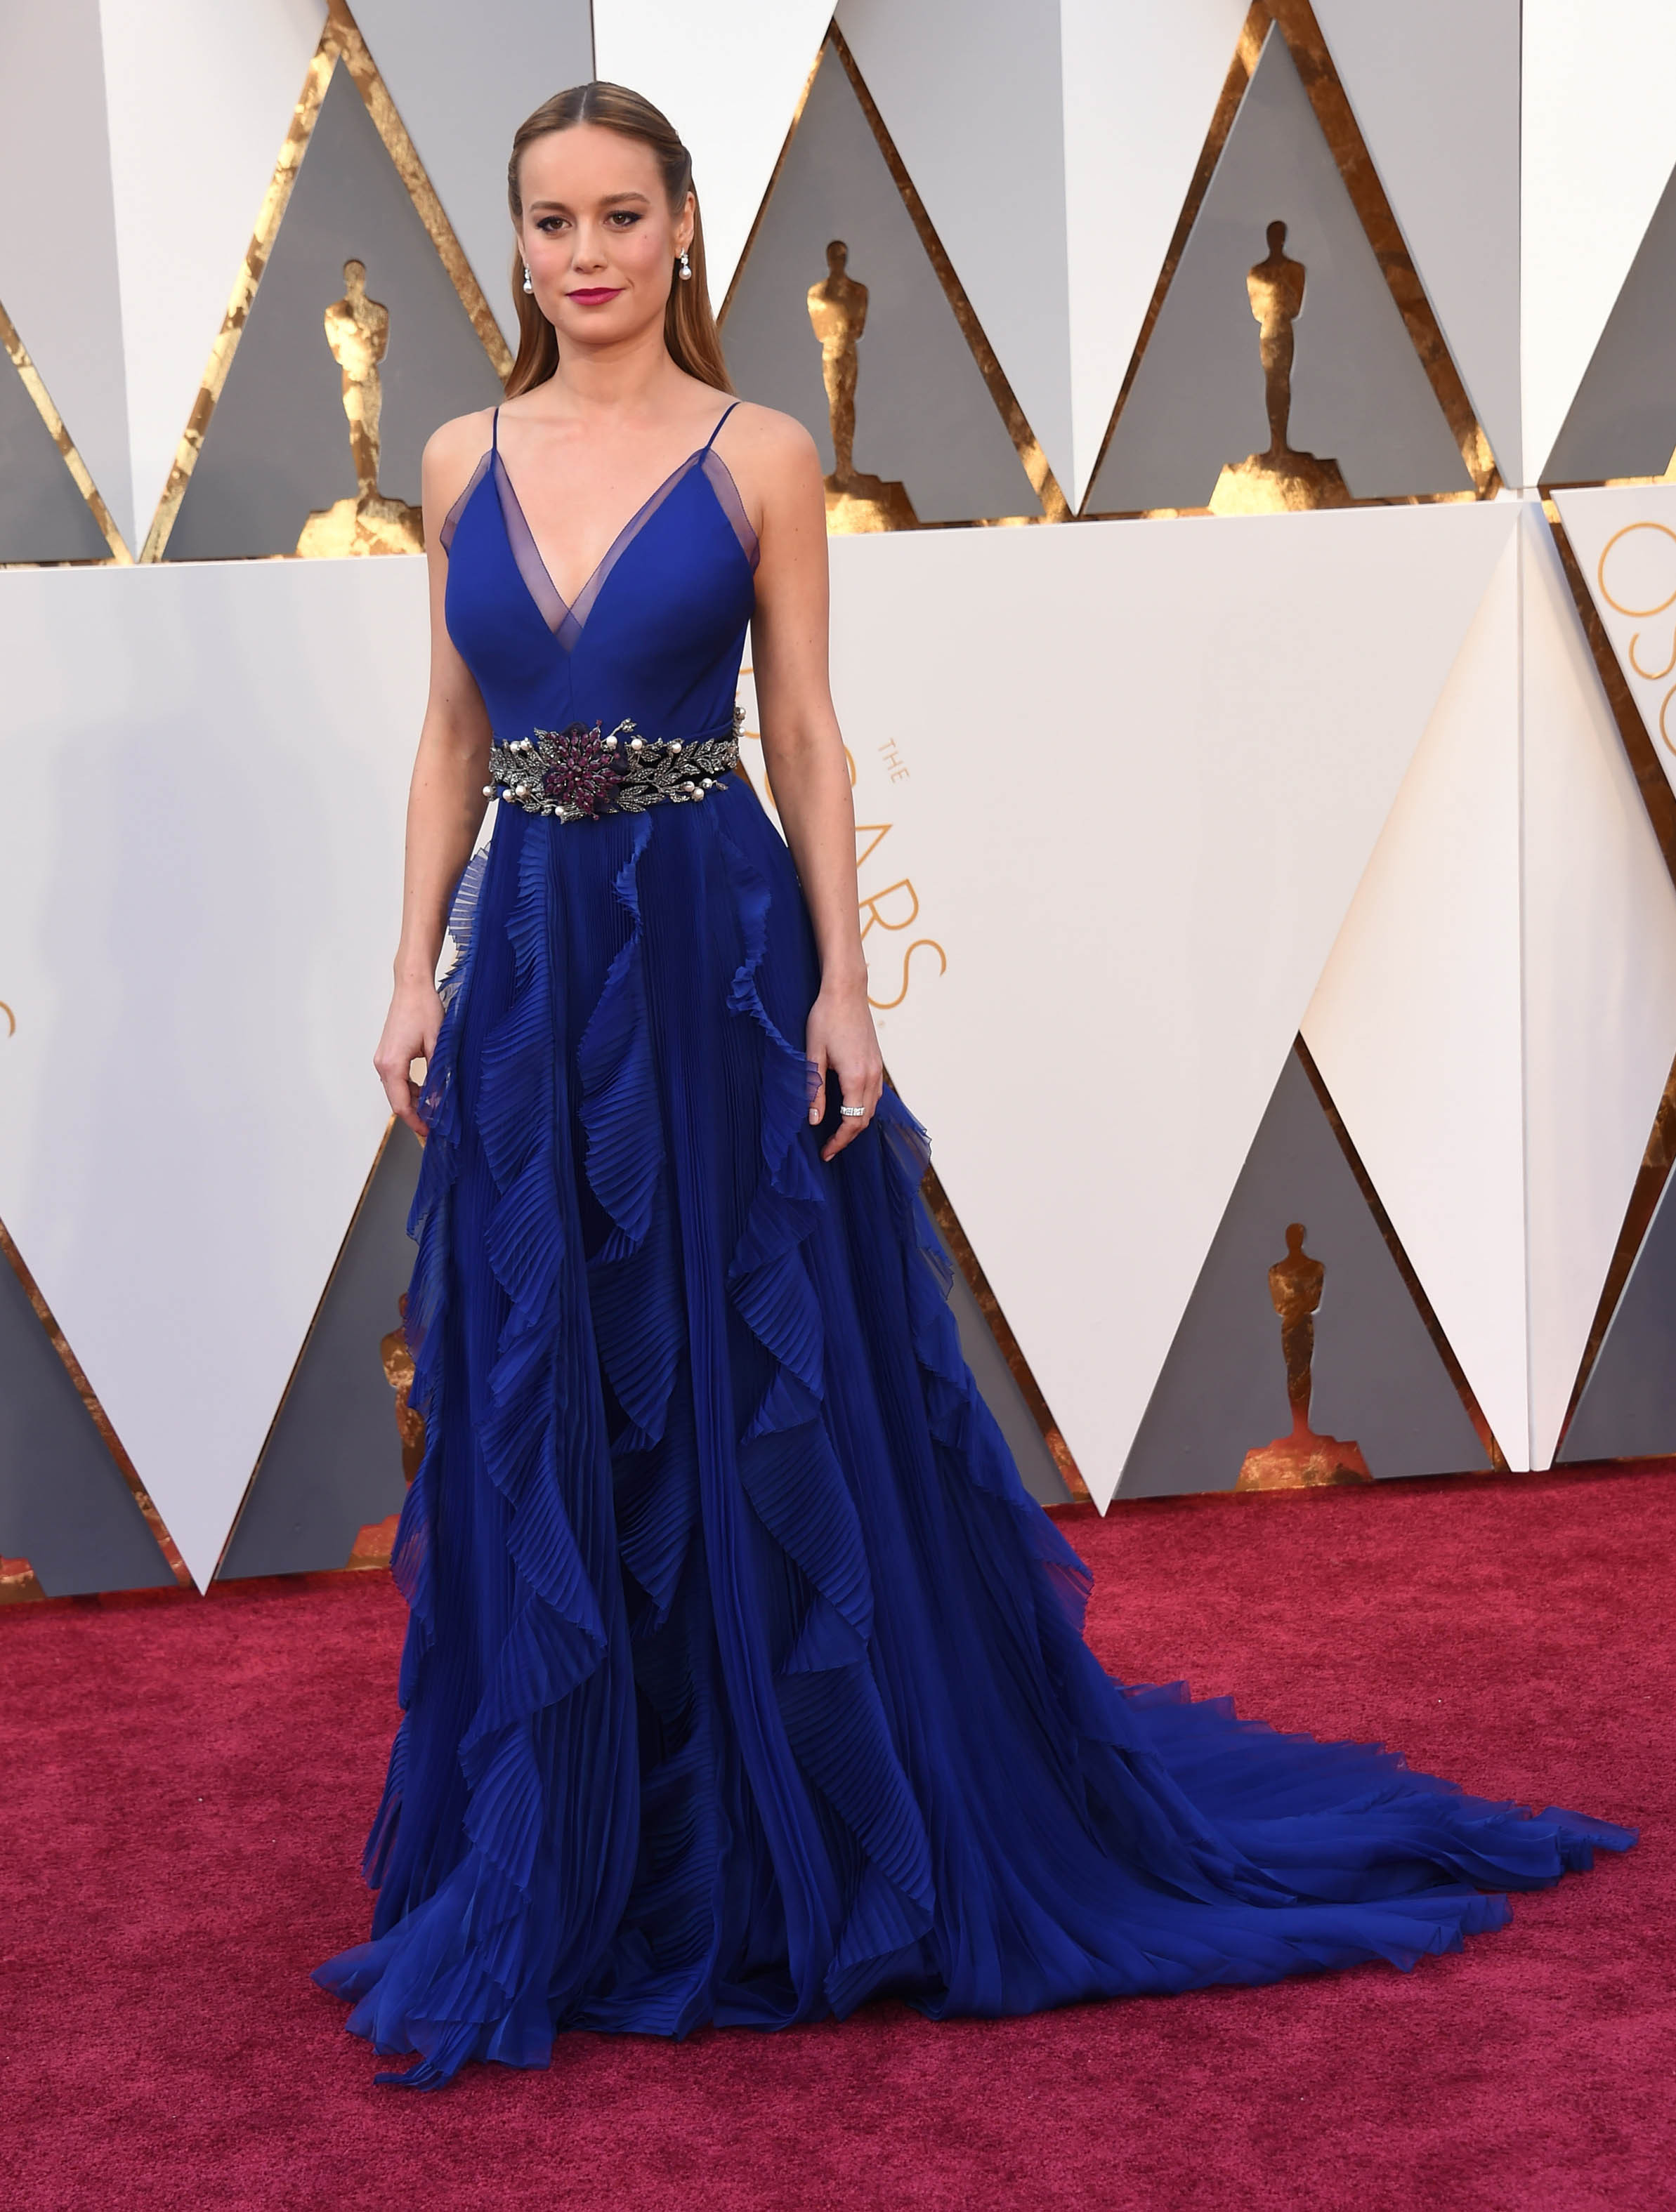 Photo by: KGC-11/starmaxinc.com STAR MAX Copyright 2016 ALL RIGHTS RESERVED Telephone/Fax: (212) 995-1196 2/28/16 Brie Larson at the 88th Annual Academy Awards (Oscars). (Hollywood, CA, USA)